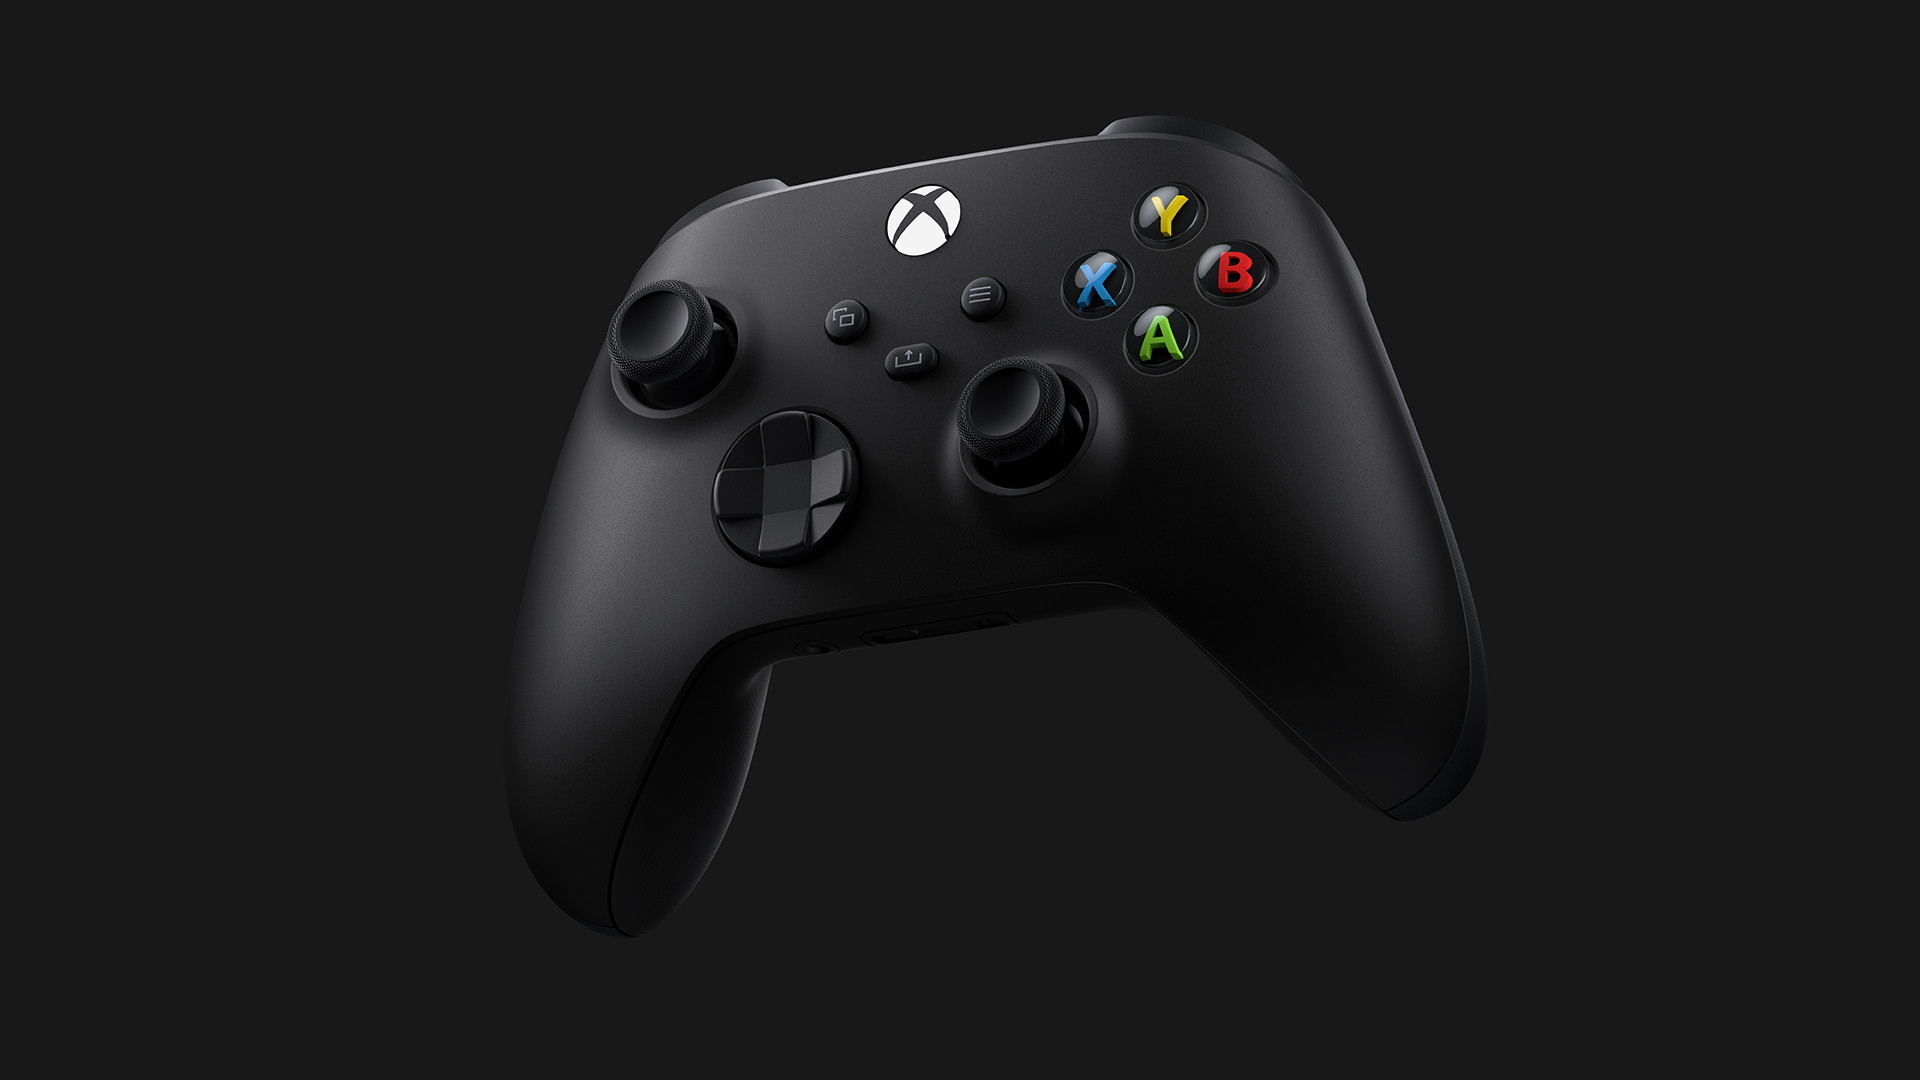 All Xbox One Controllers And Peripherals Compatible With Xbox Series X